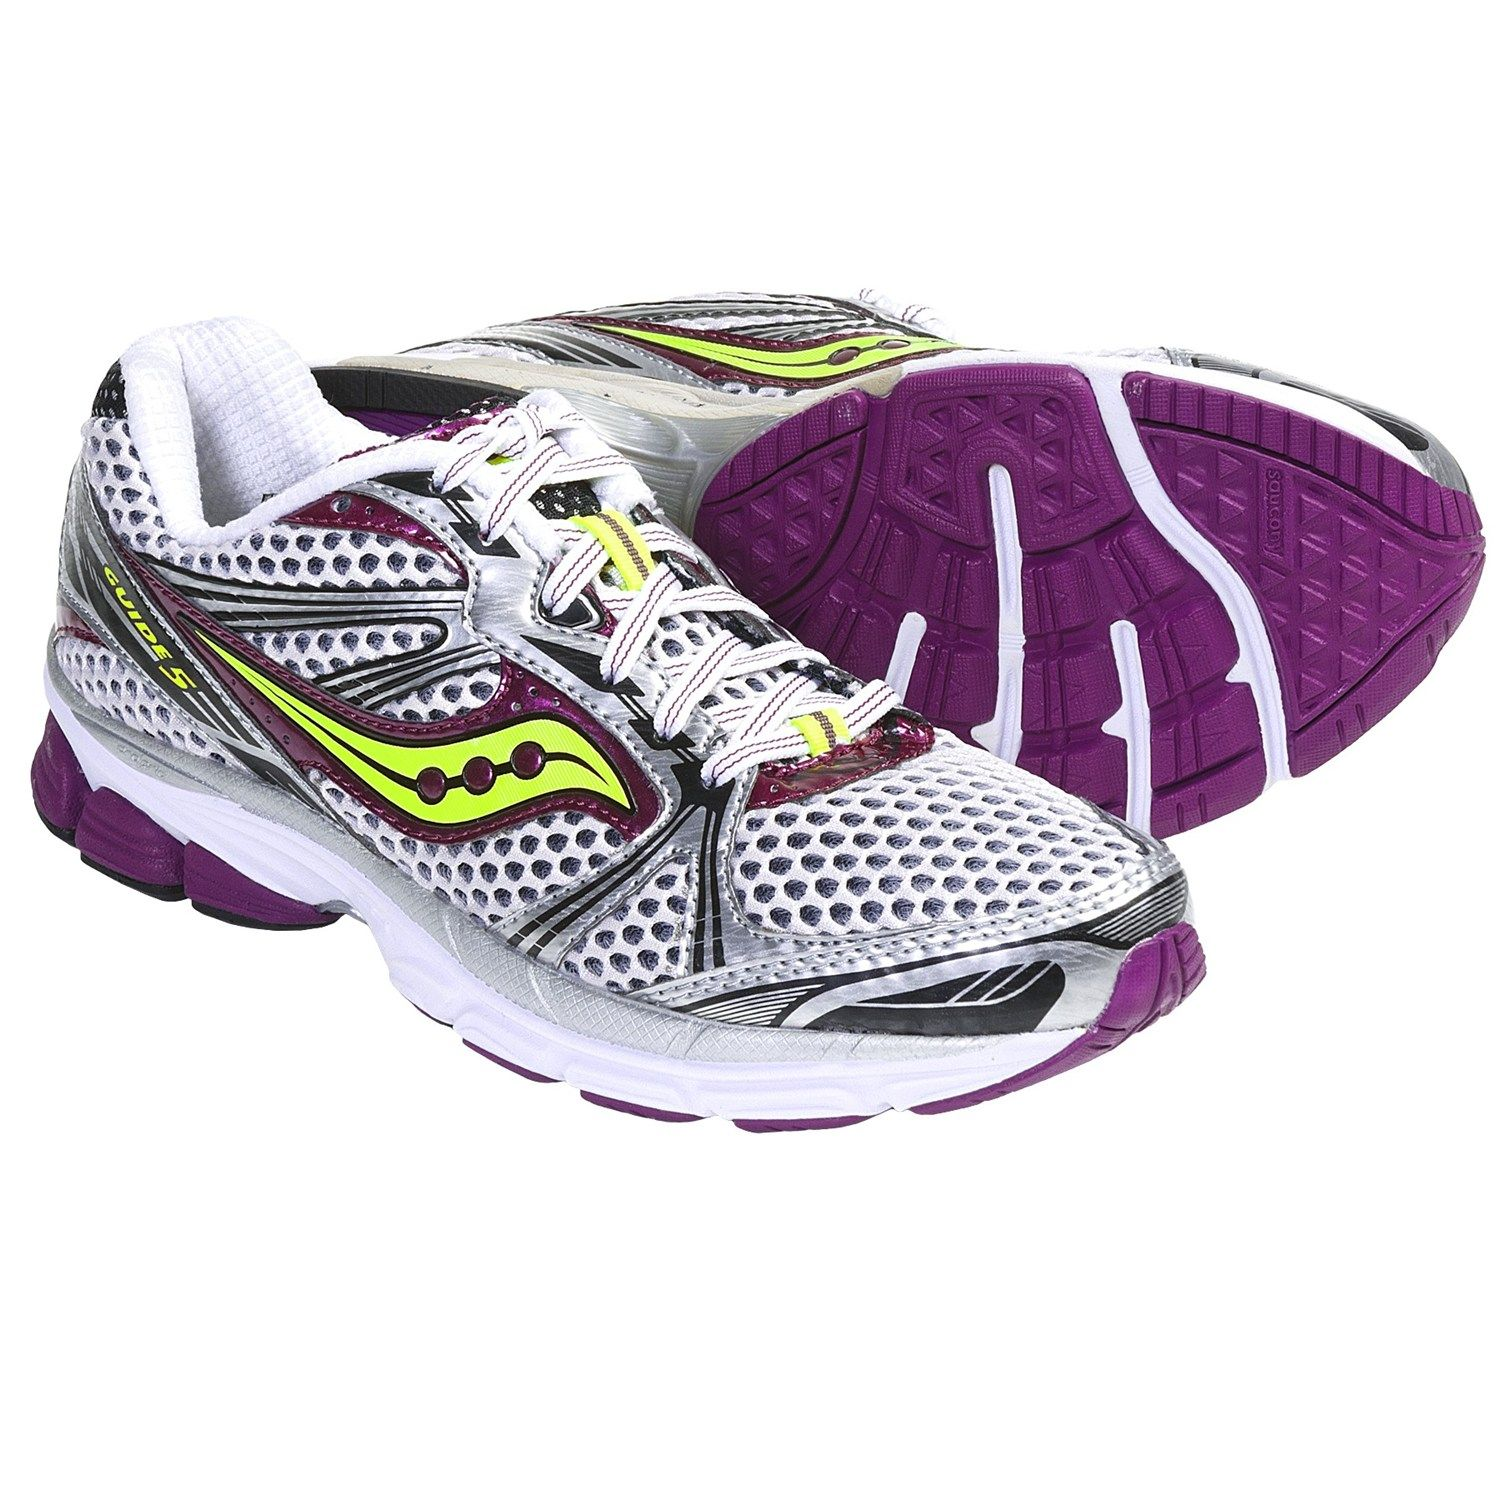 57c2e970470f Saucony ProGrid Guide 5 Running Shoes (For Women)